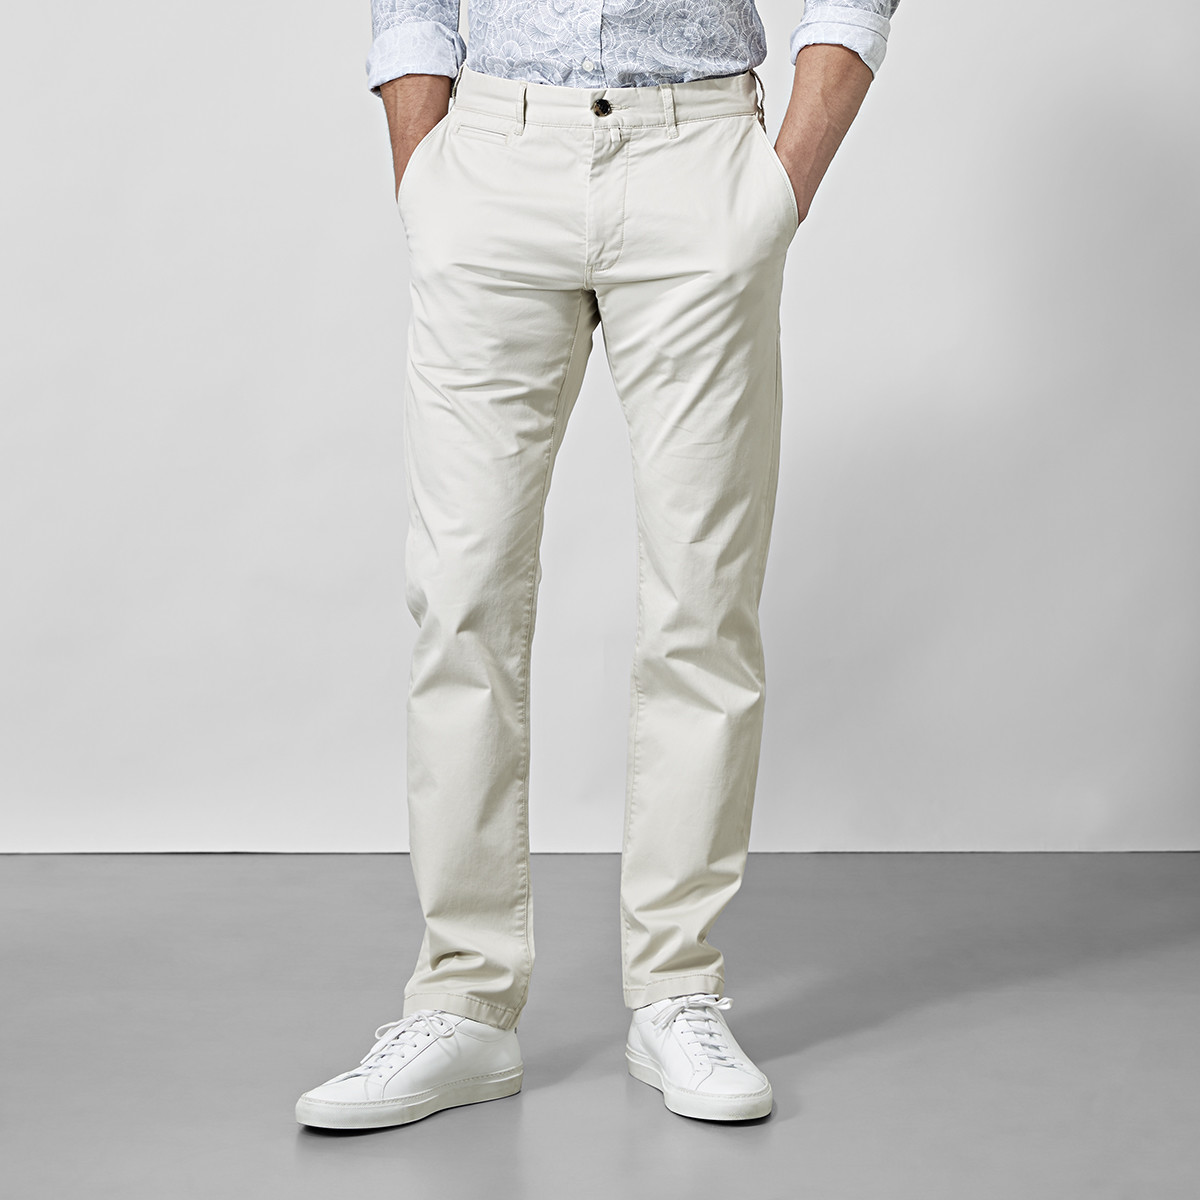 Beige Chino Baxter  | East West | Brothers.se